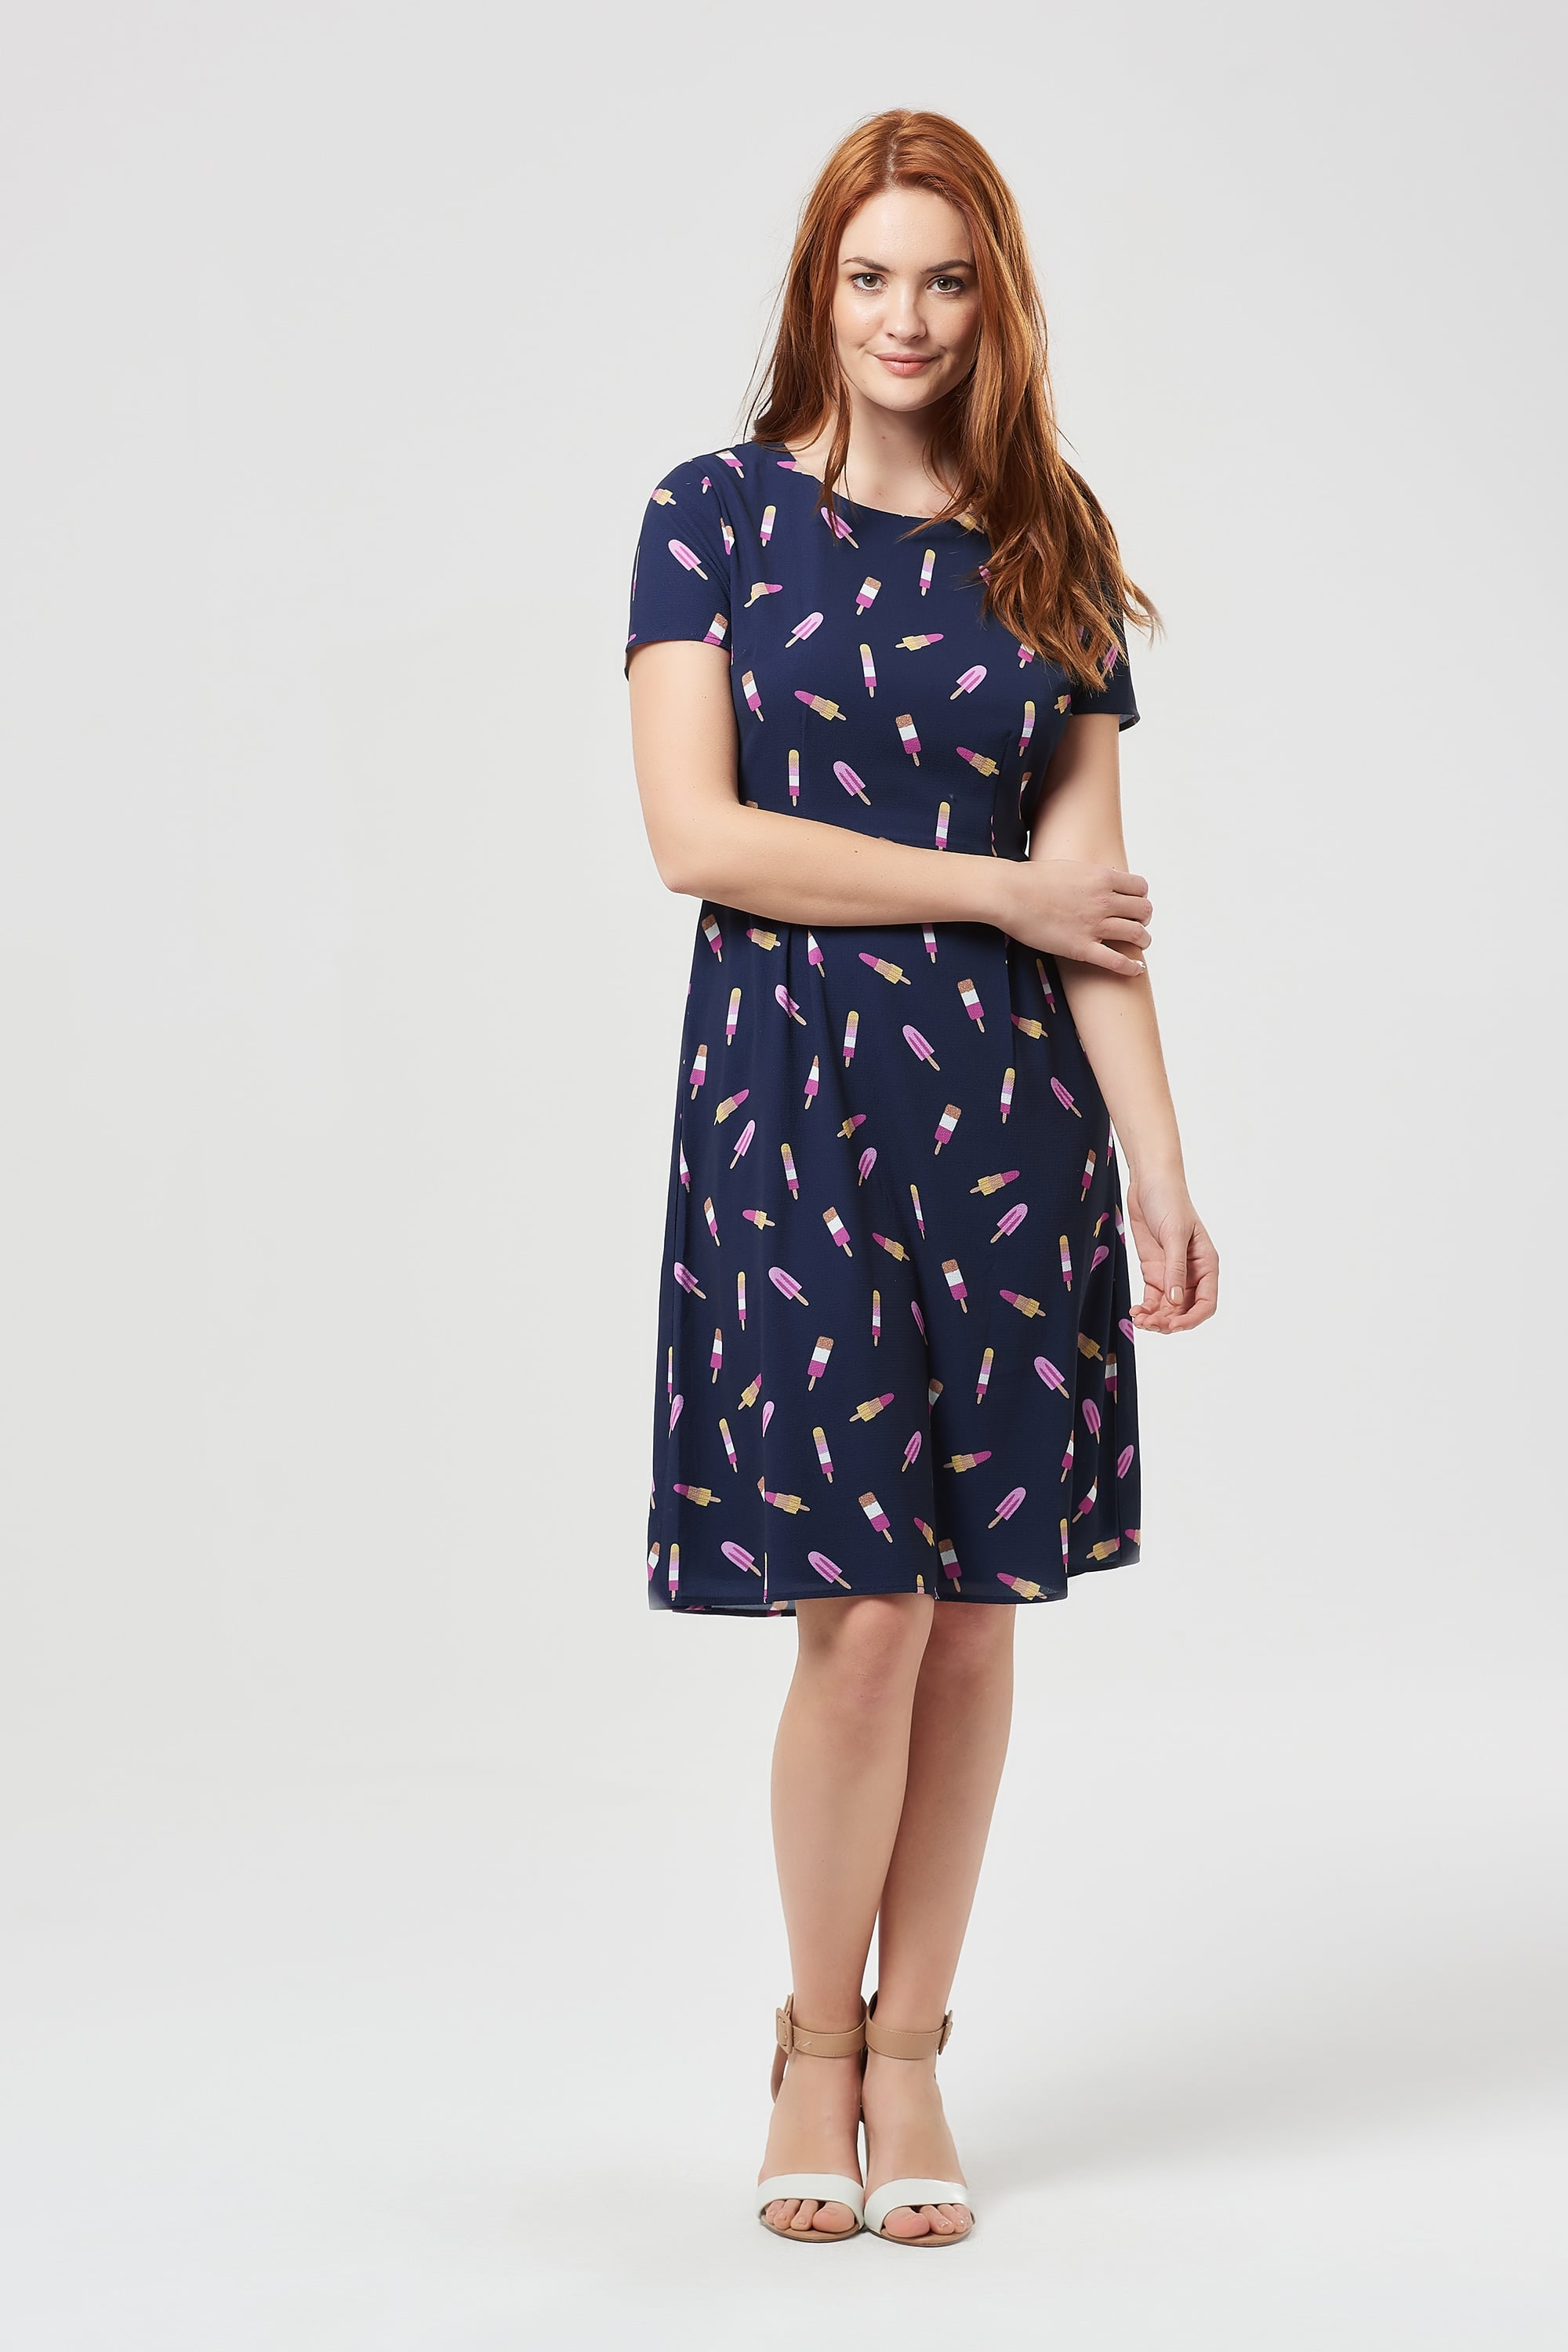 top picks - dress